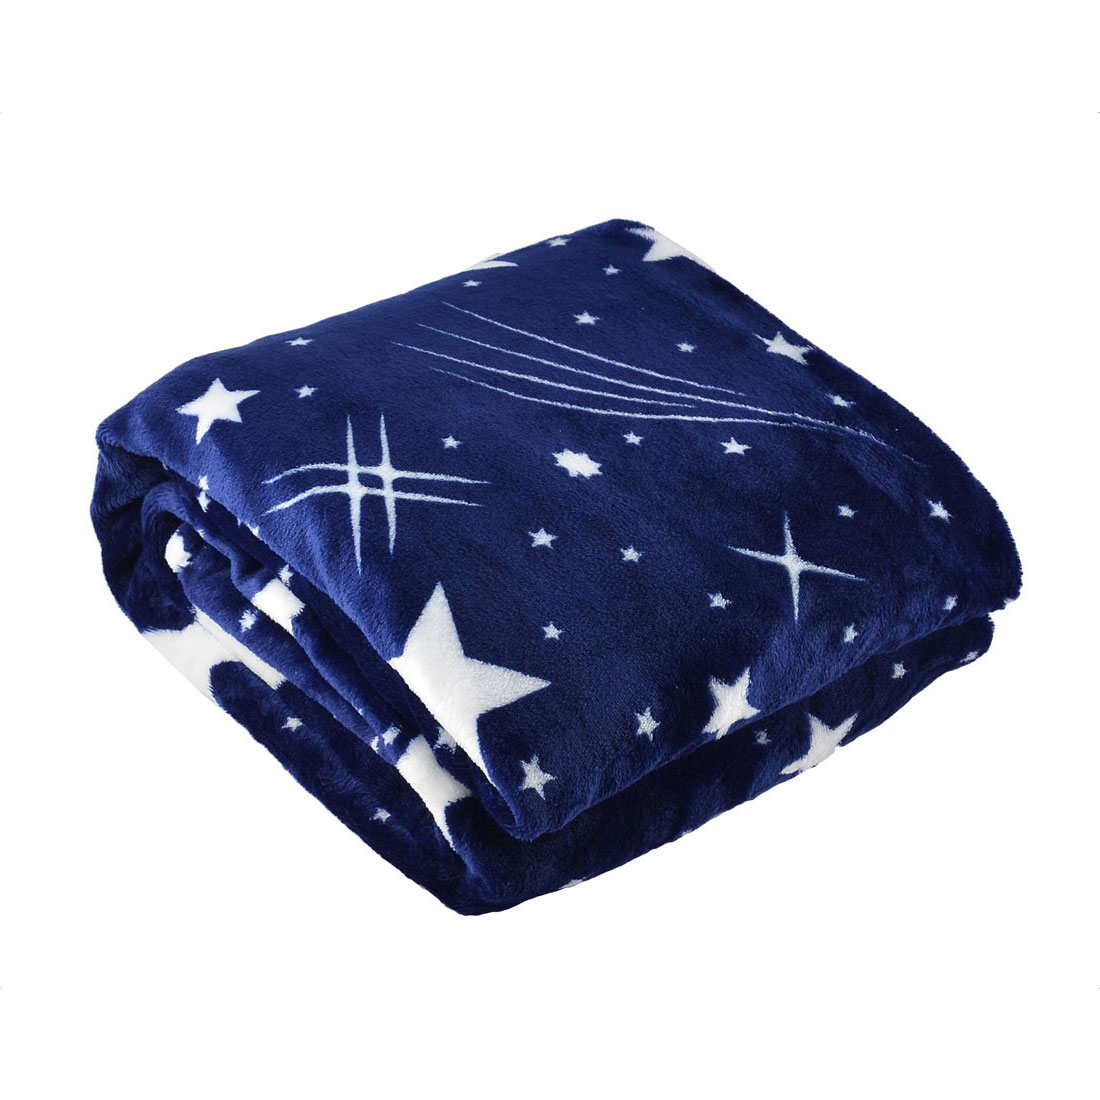 200 x 230cm King Size Home Bedroom Warm Throw Blanket Rug Plush Fleece Bed Quilt Sofa Soft Star Pattern Dark Blue